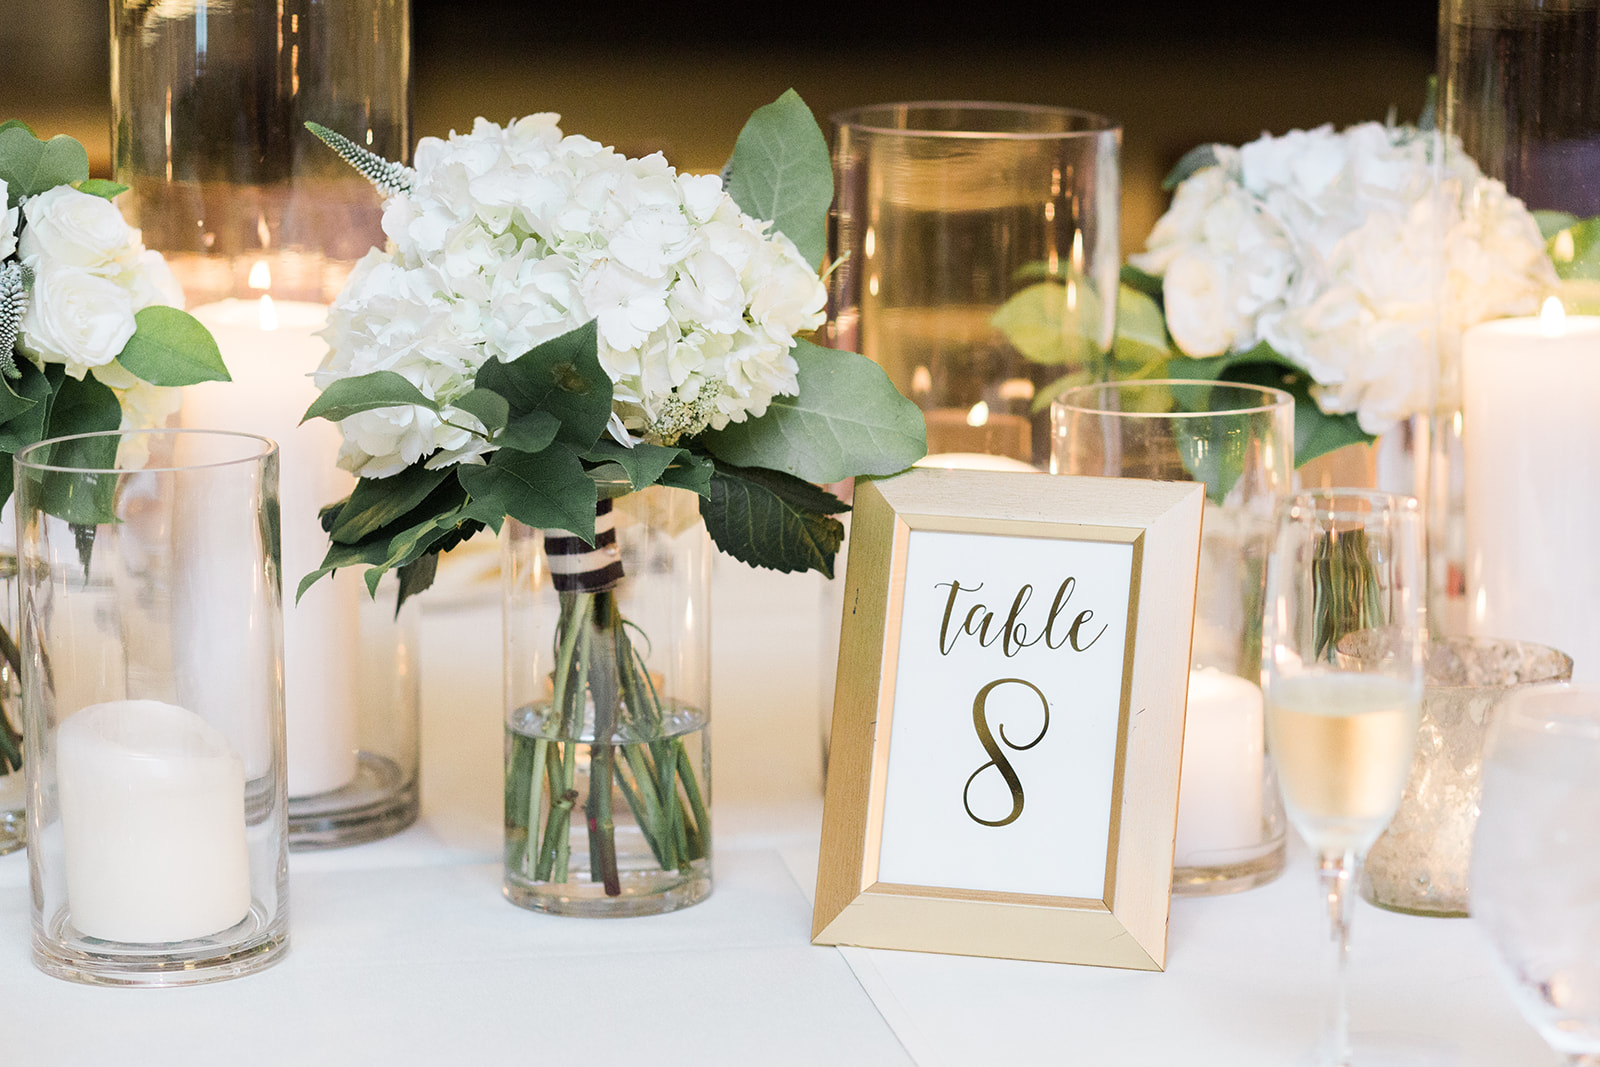 Low wedding centerpieces with white flowers and wedding table numbers in gold frames for Pittsburgh wedding at PNC Park planned by Exhale Events. Find more wedding inspiration at exhale-events.com!